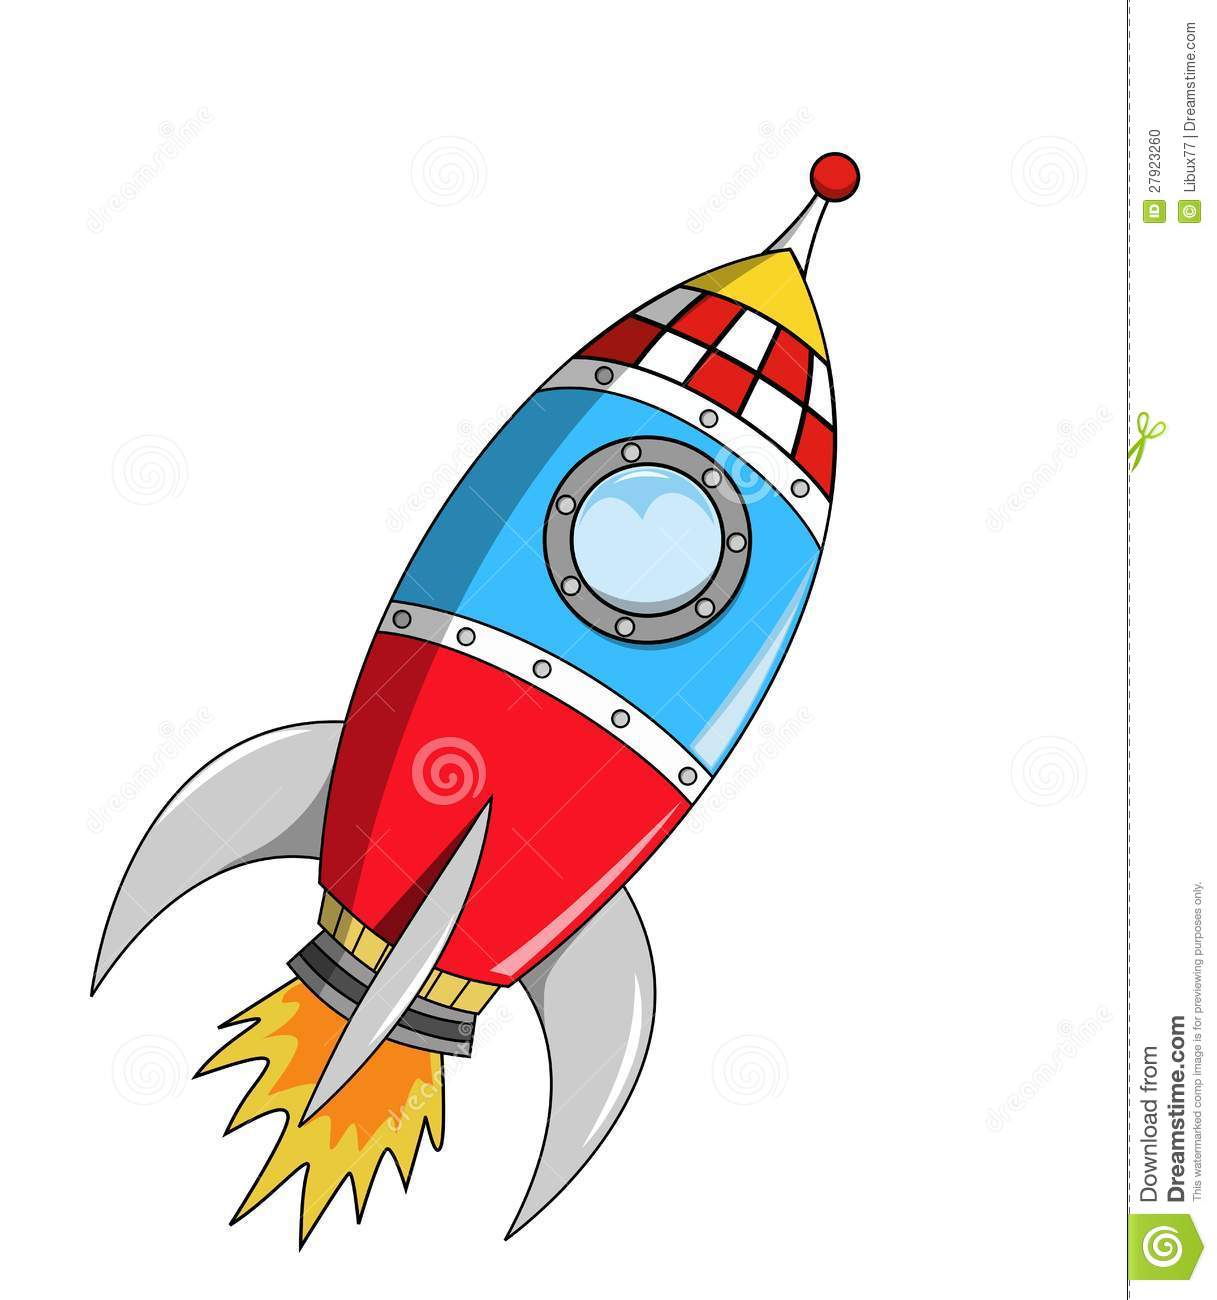 Cartoon Space Rocket On Mission Stock Photo.